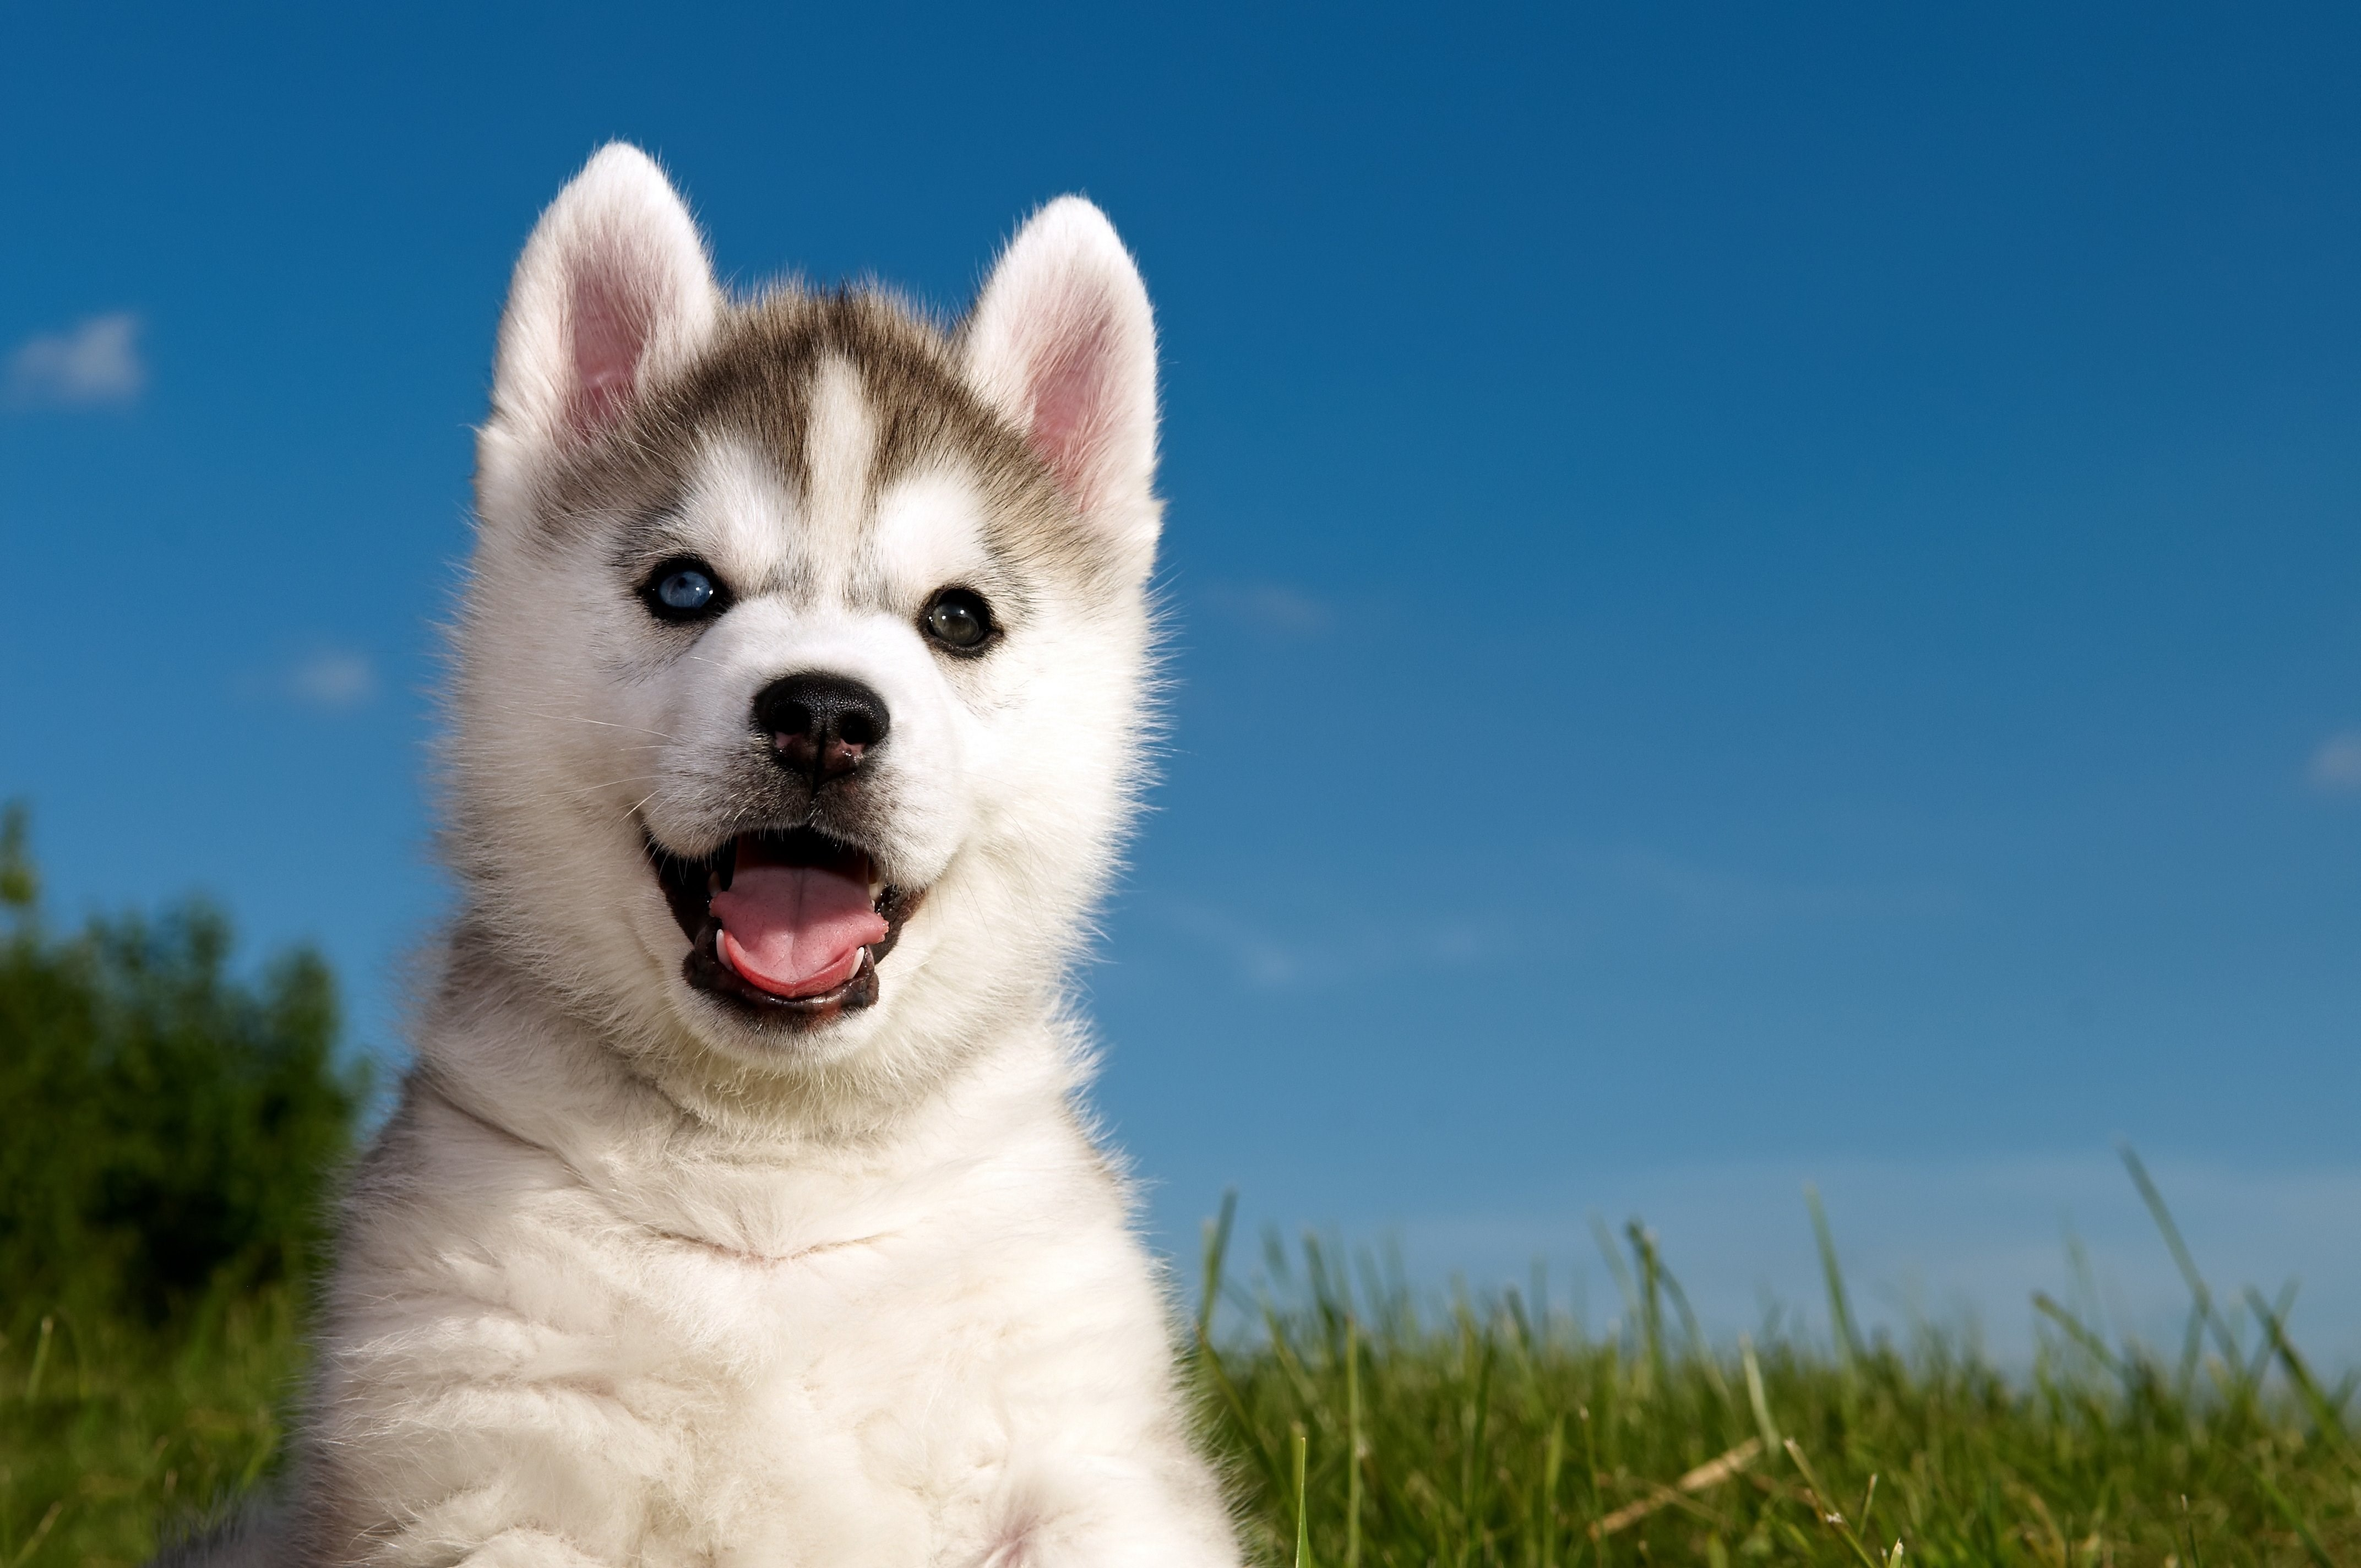 baby-husky-full-hd-Lowell-Allford-x-wallpaper-wpc5802464